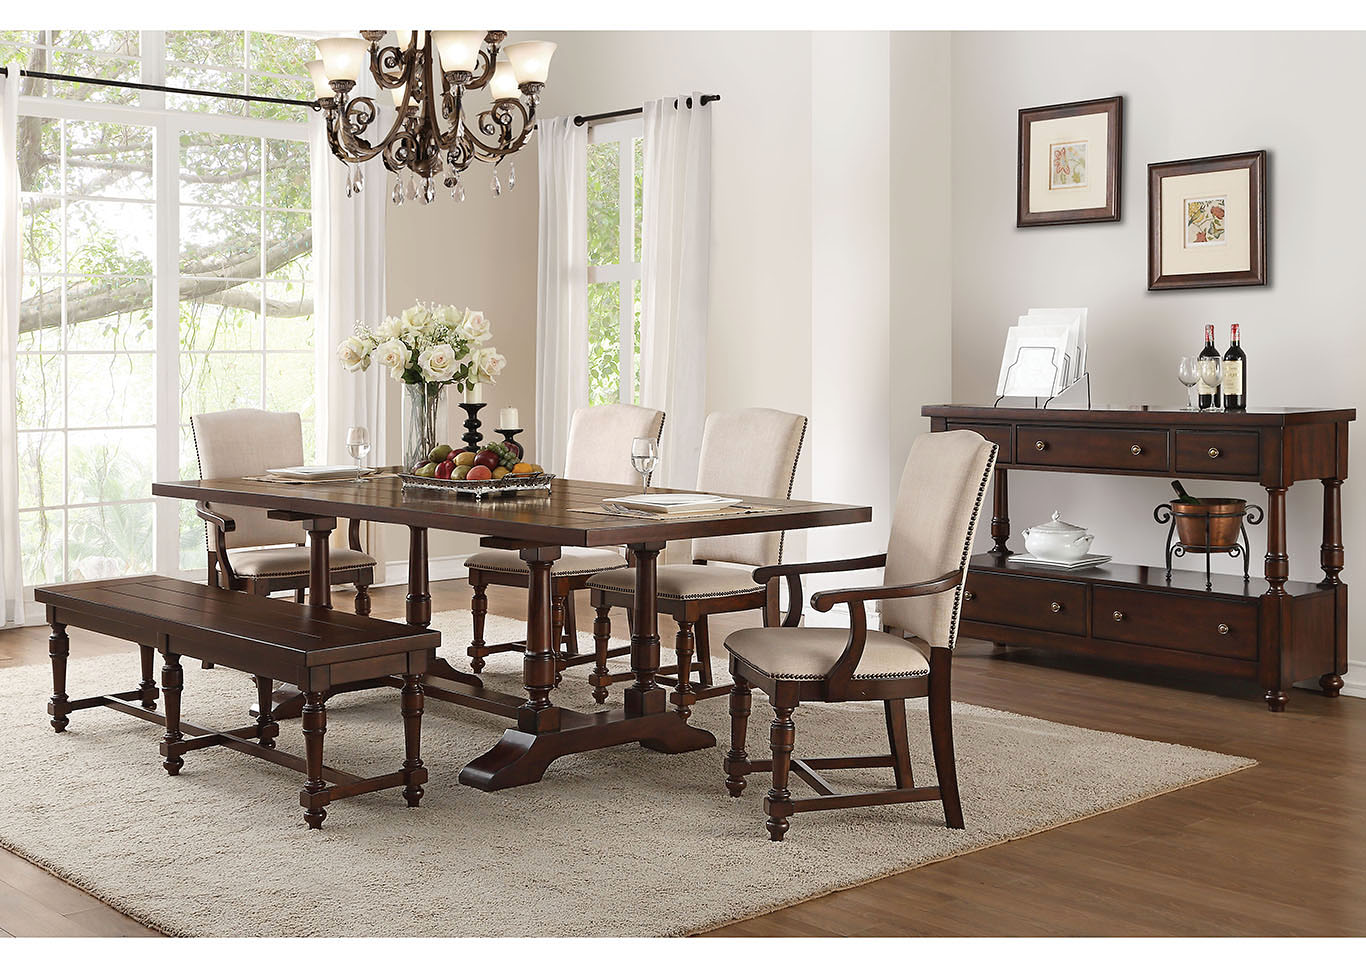 Strange Gorees Furniture Opelika Al Tanner Cherry Dining Table W Gmtry Best Dining Table And Chair Ideas Images Gmtryco